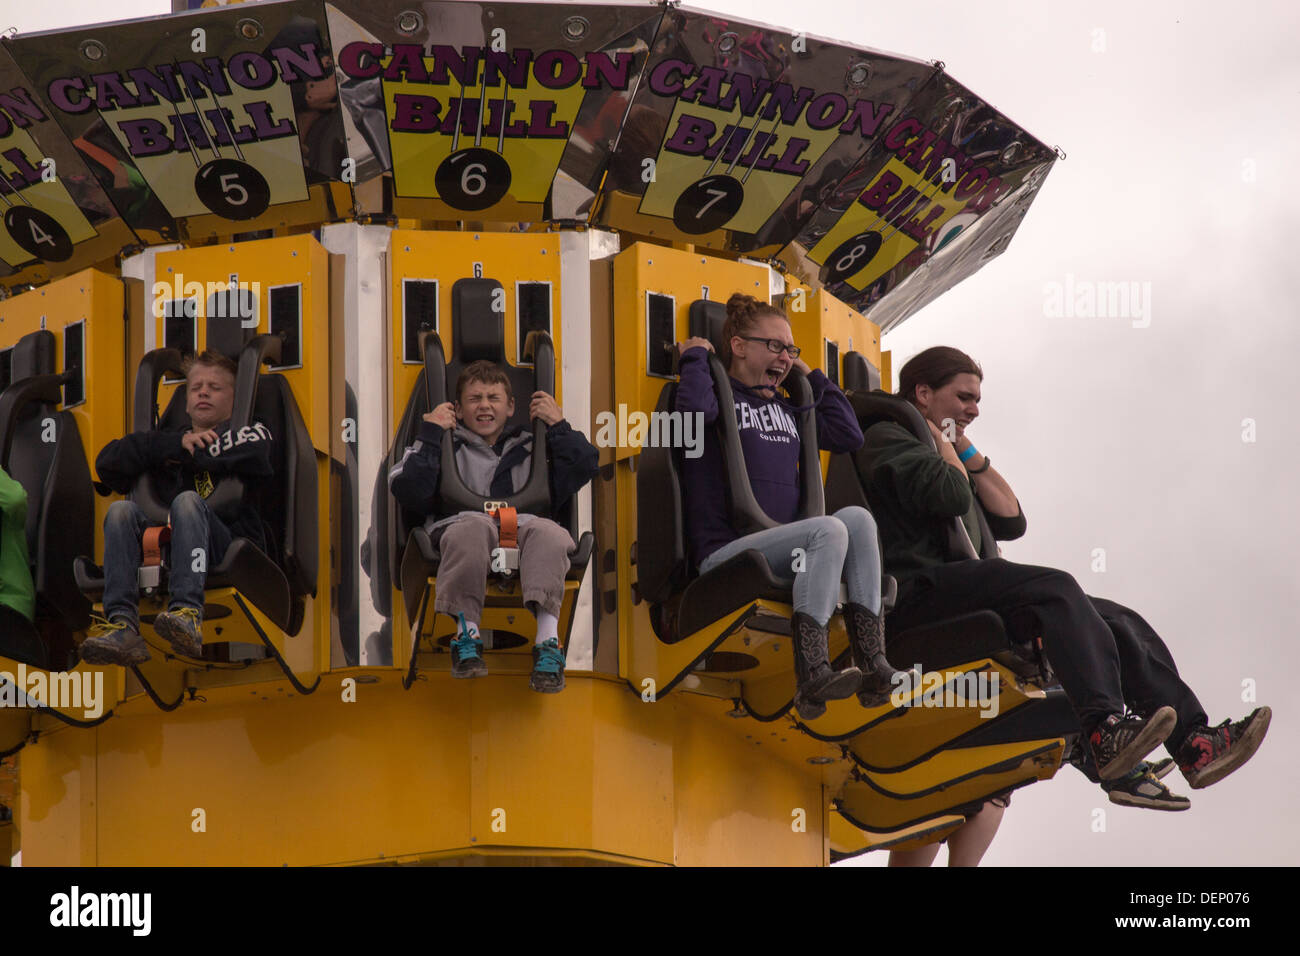 tower-ride-at-lindsay-fair-and-exhibition-in-kawartha-lakes-DEP076.jpg